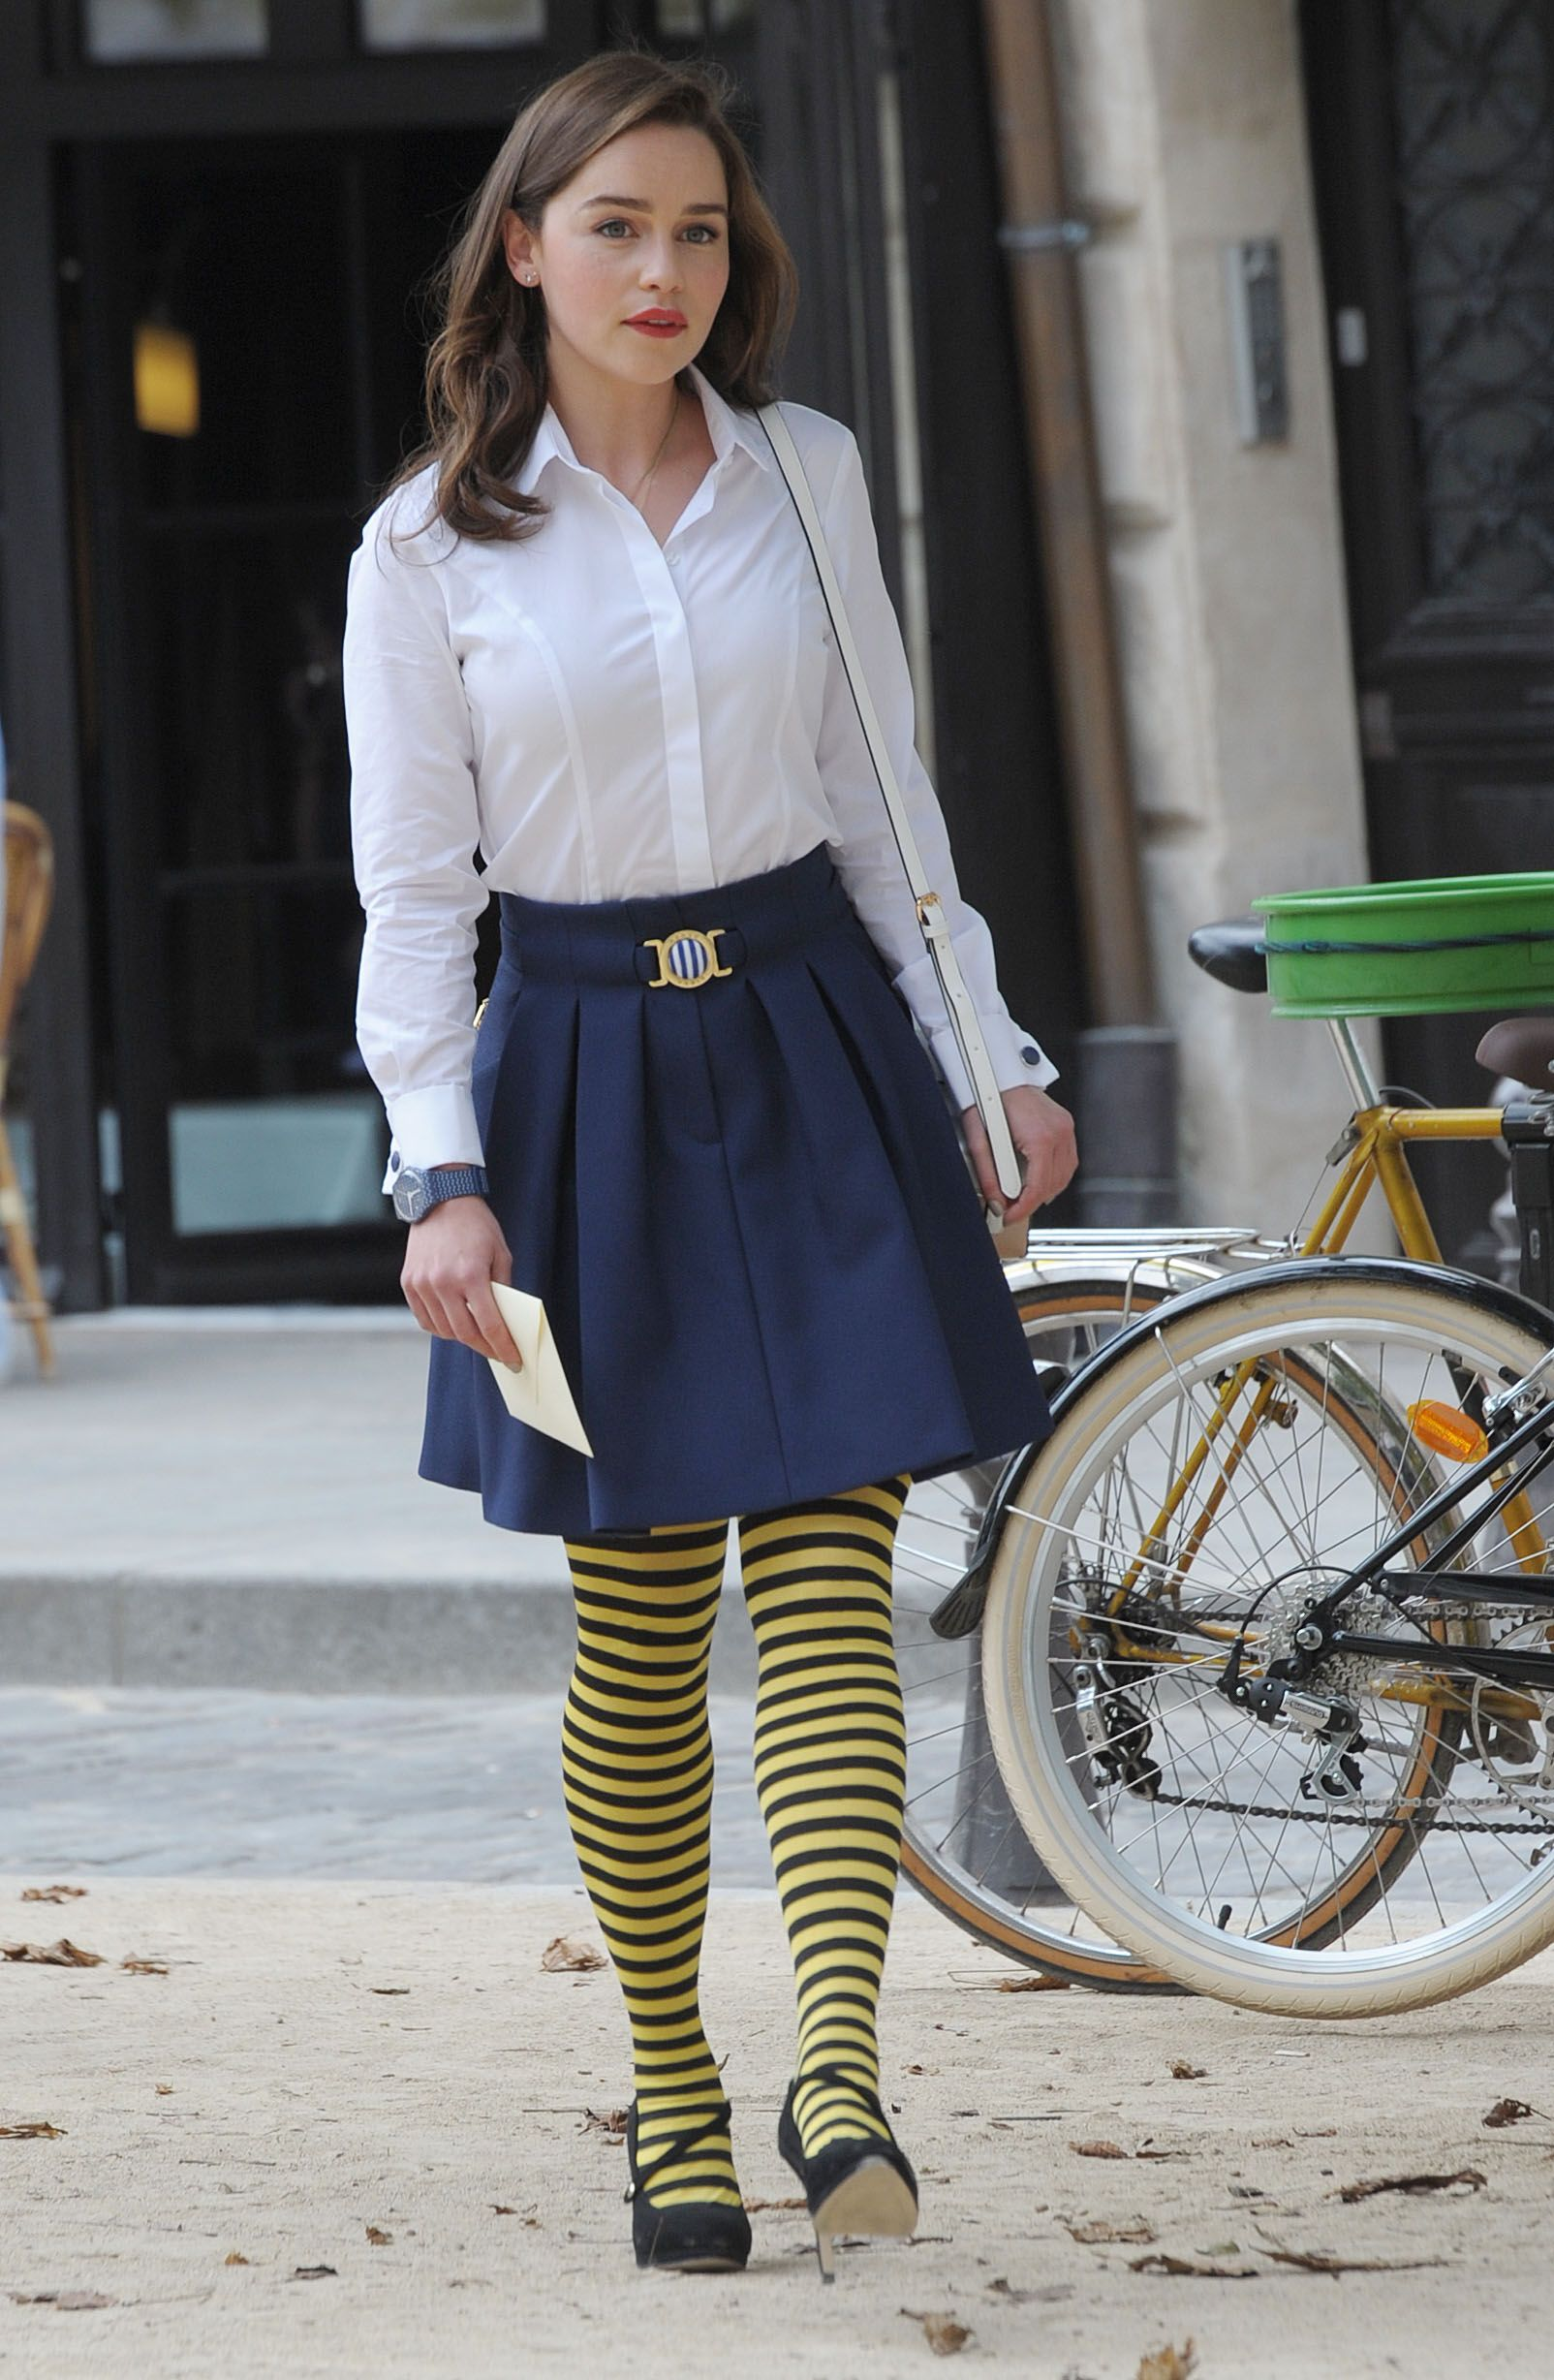 721b5ceaef3d51 Emilia and her adorable bumble bee tights. Me Before You outfit, the Mother  of